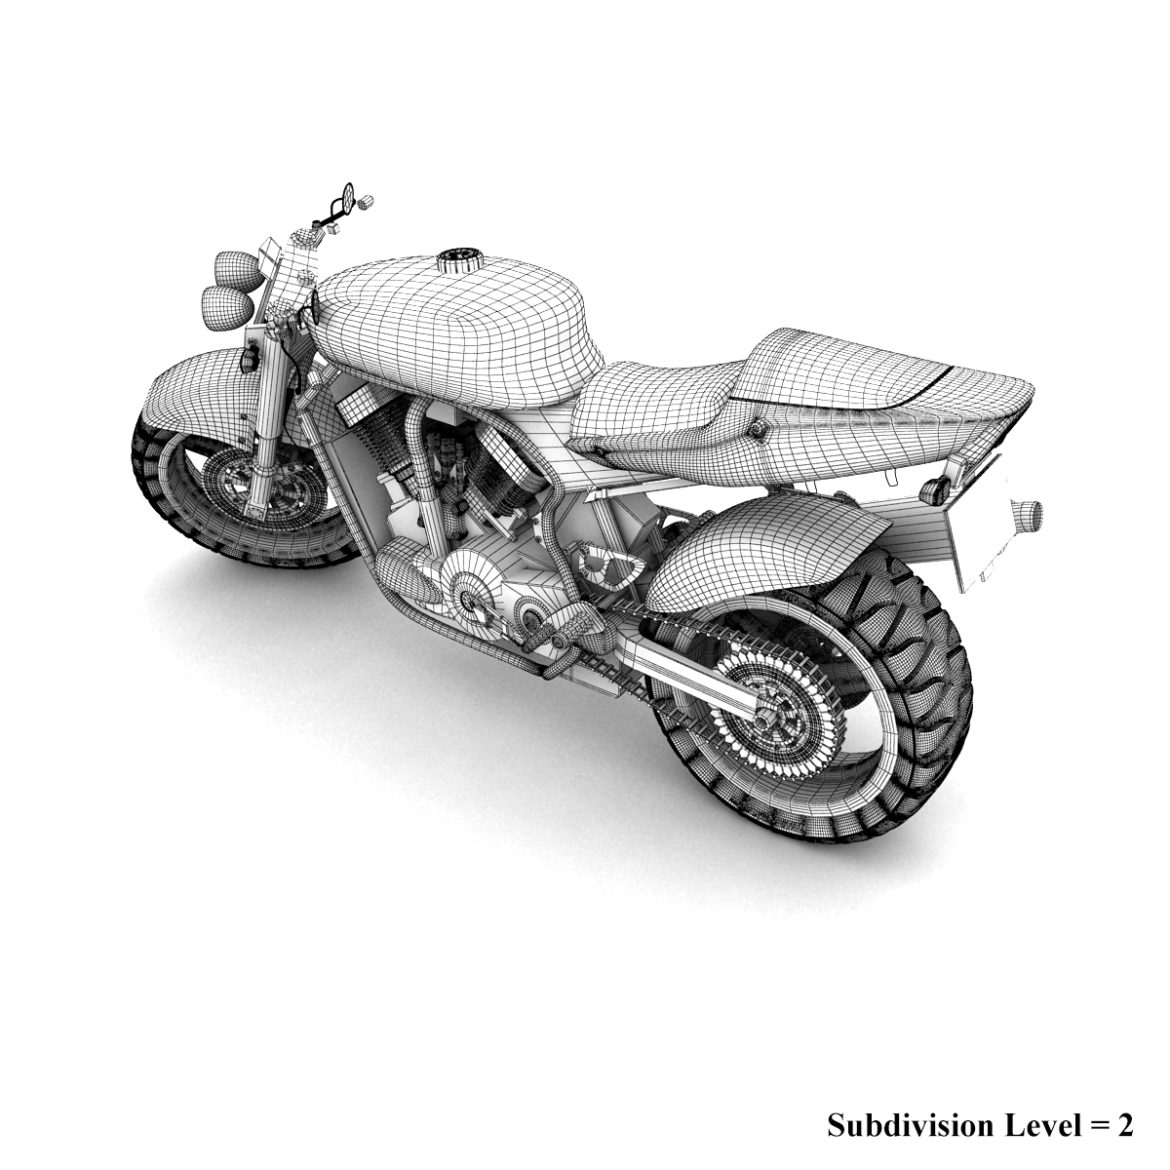 suzuki street fighter motorcycle 3d model 3ds max fbx obj 293875